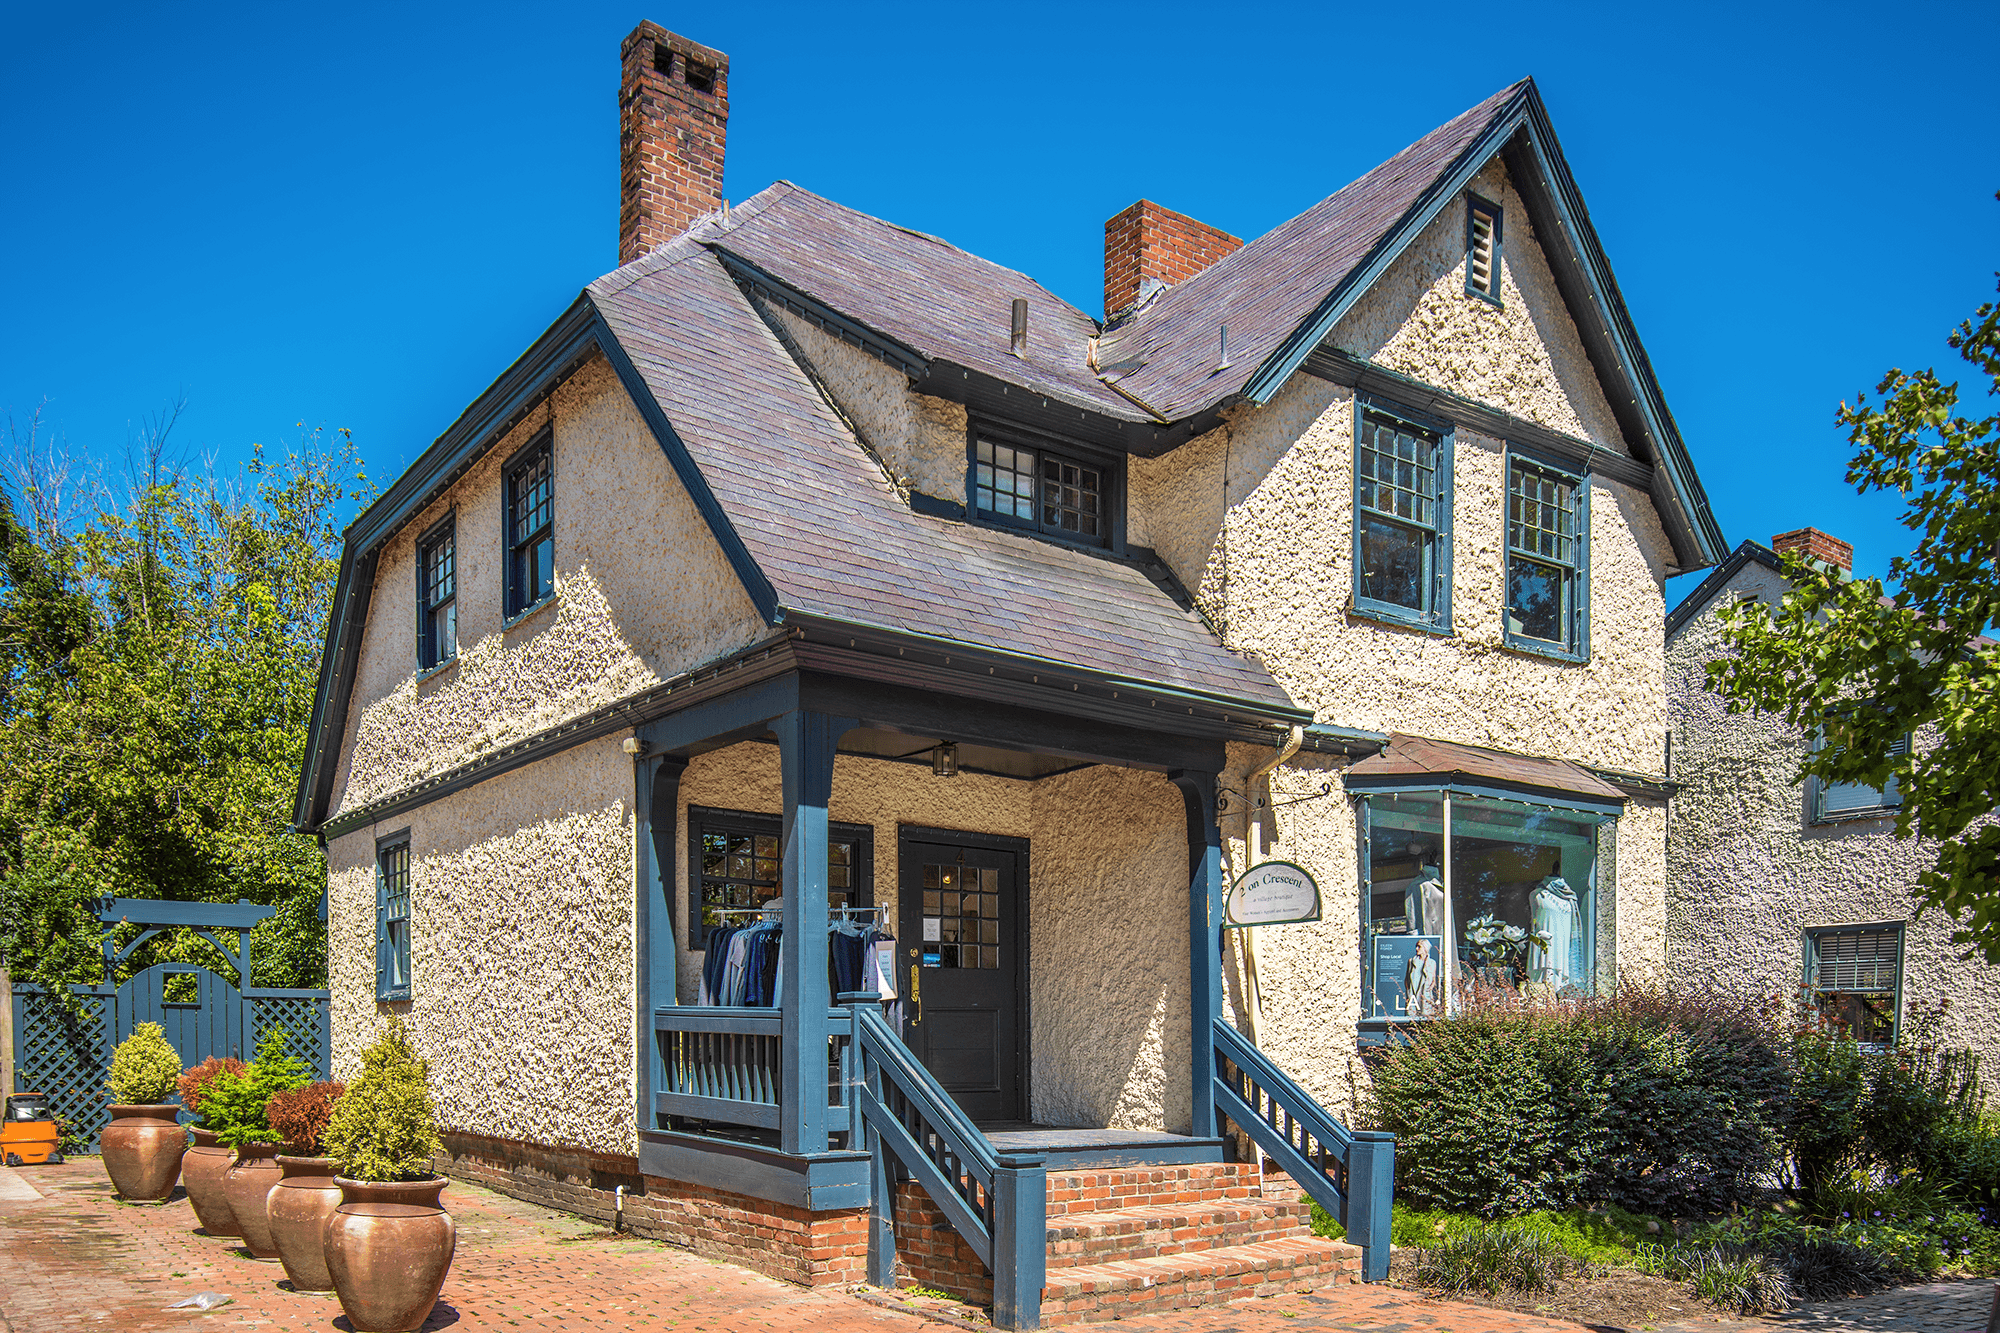 This cottage on 4 All Souls Crescent is small and has only a one-bay recessed porch with a two-story gable-end projection. Today, the cottage is a women's clothing store  2 On Crescent .